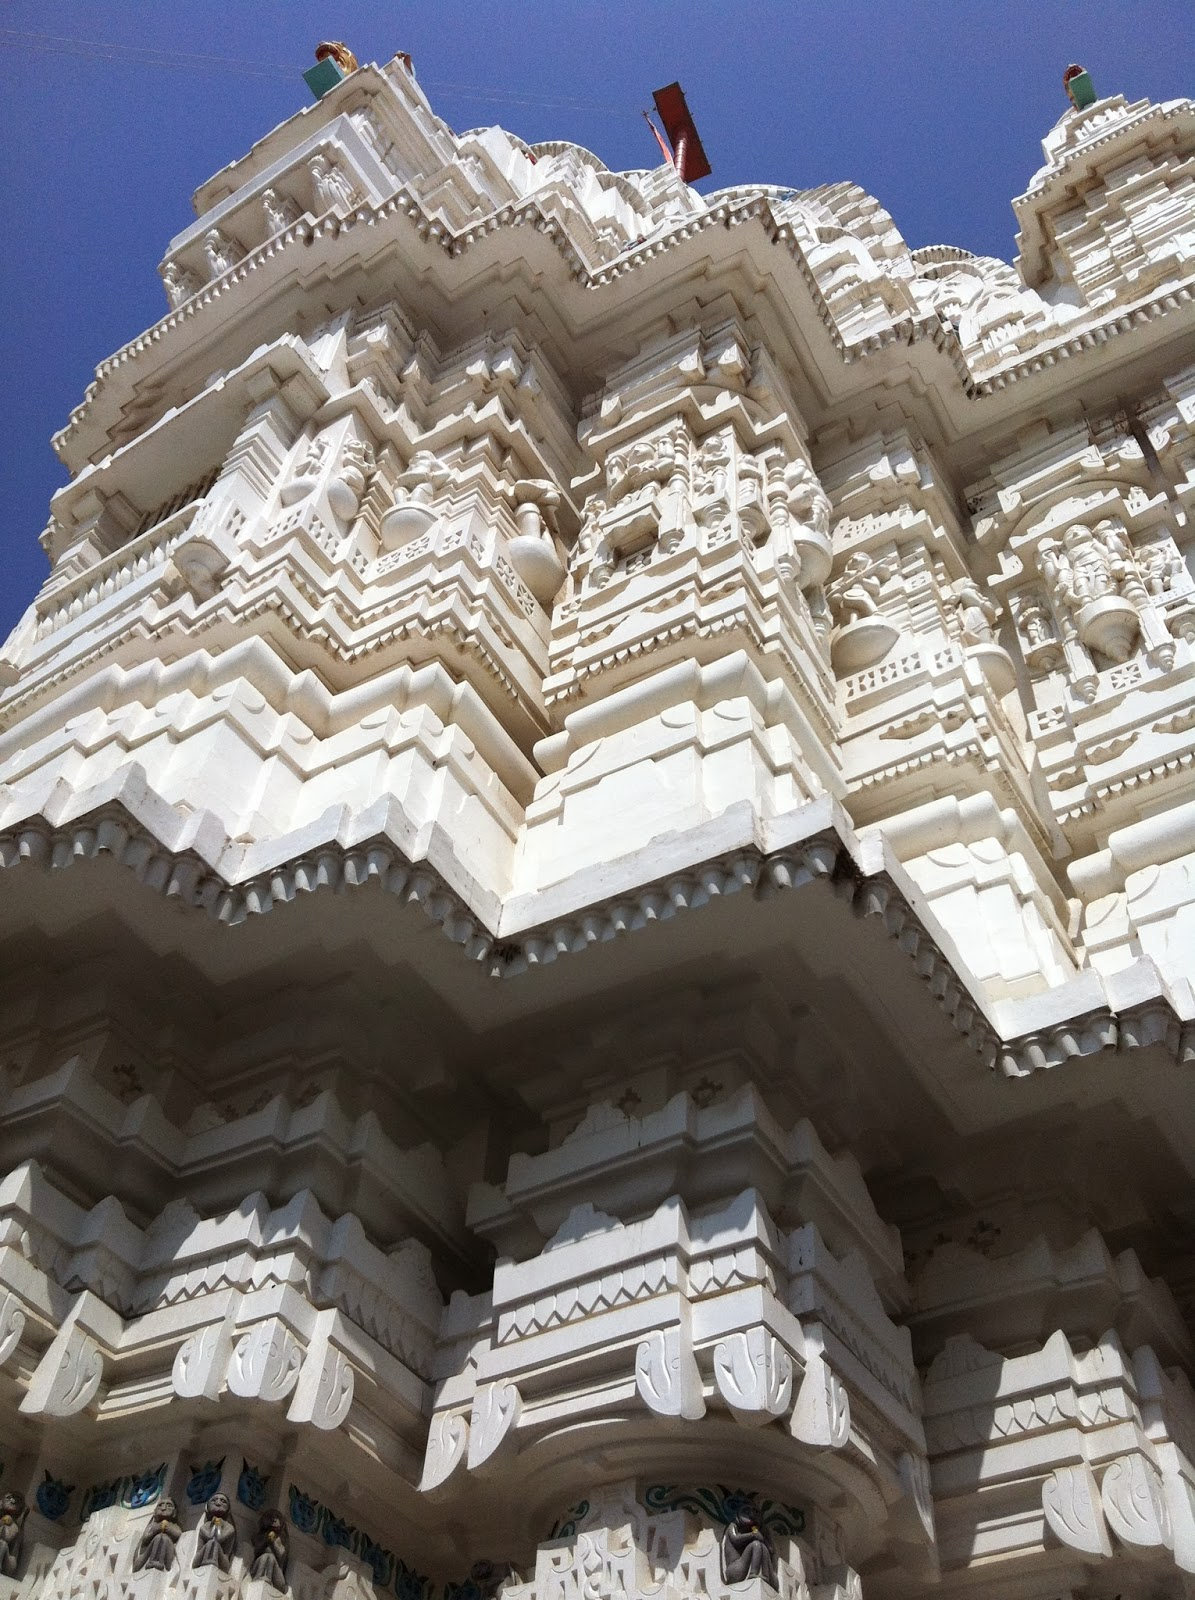 The spooky uparkot fort junagadh gujarat - Jamnagar Is Probably More Remarkable For Its Architecture